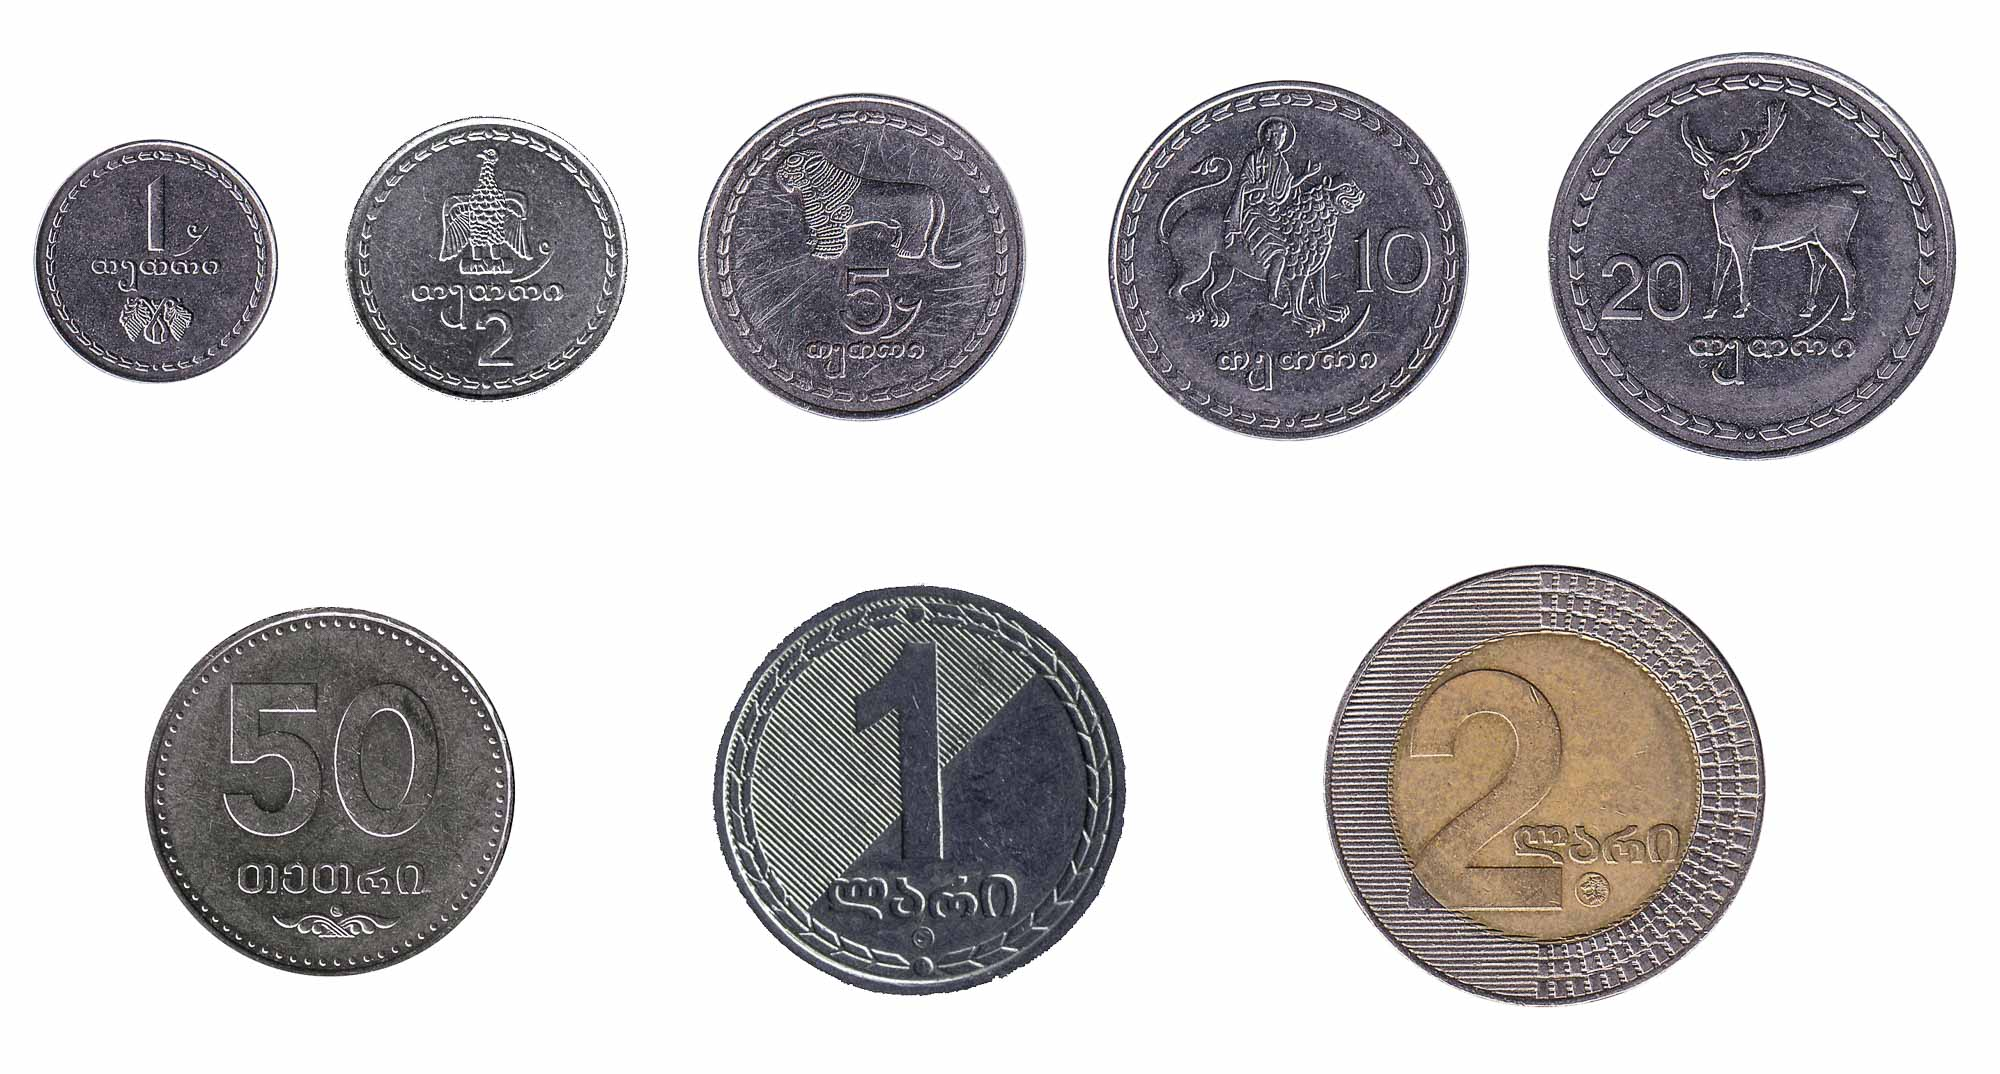 Georgian lari coins